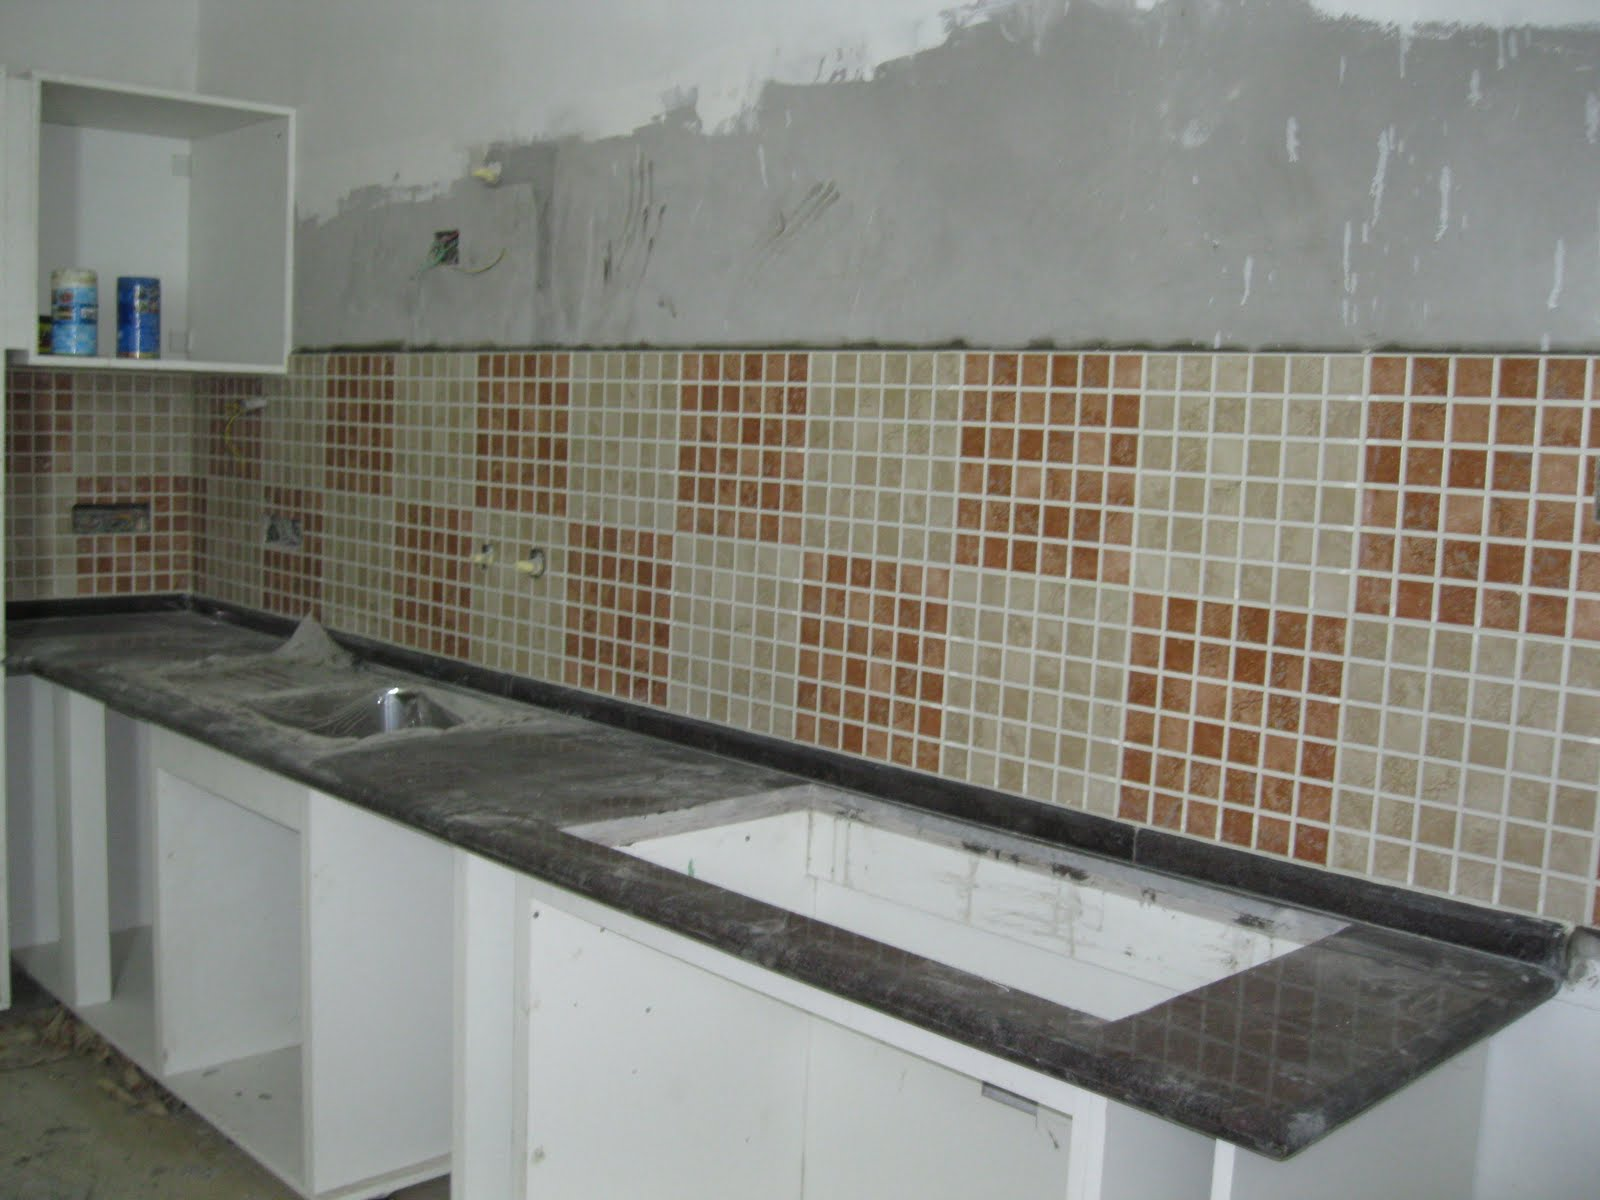 Modular kitchen tiles crowdbuild for for Kitchen tiles design photos